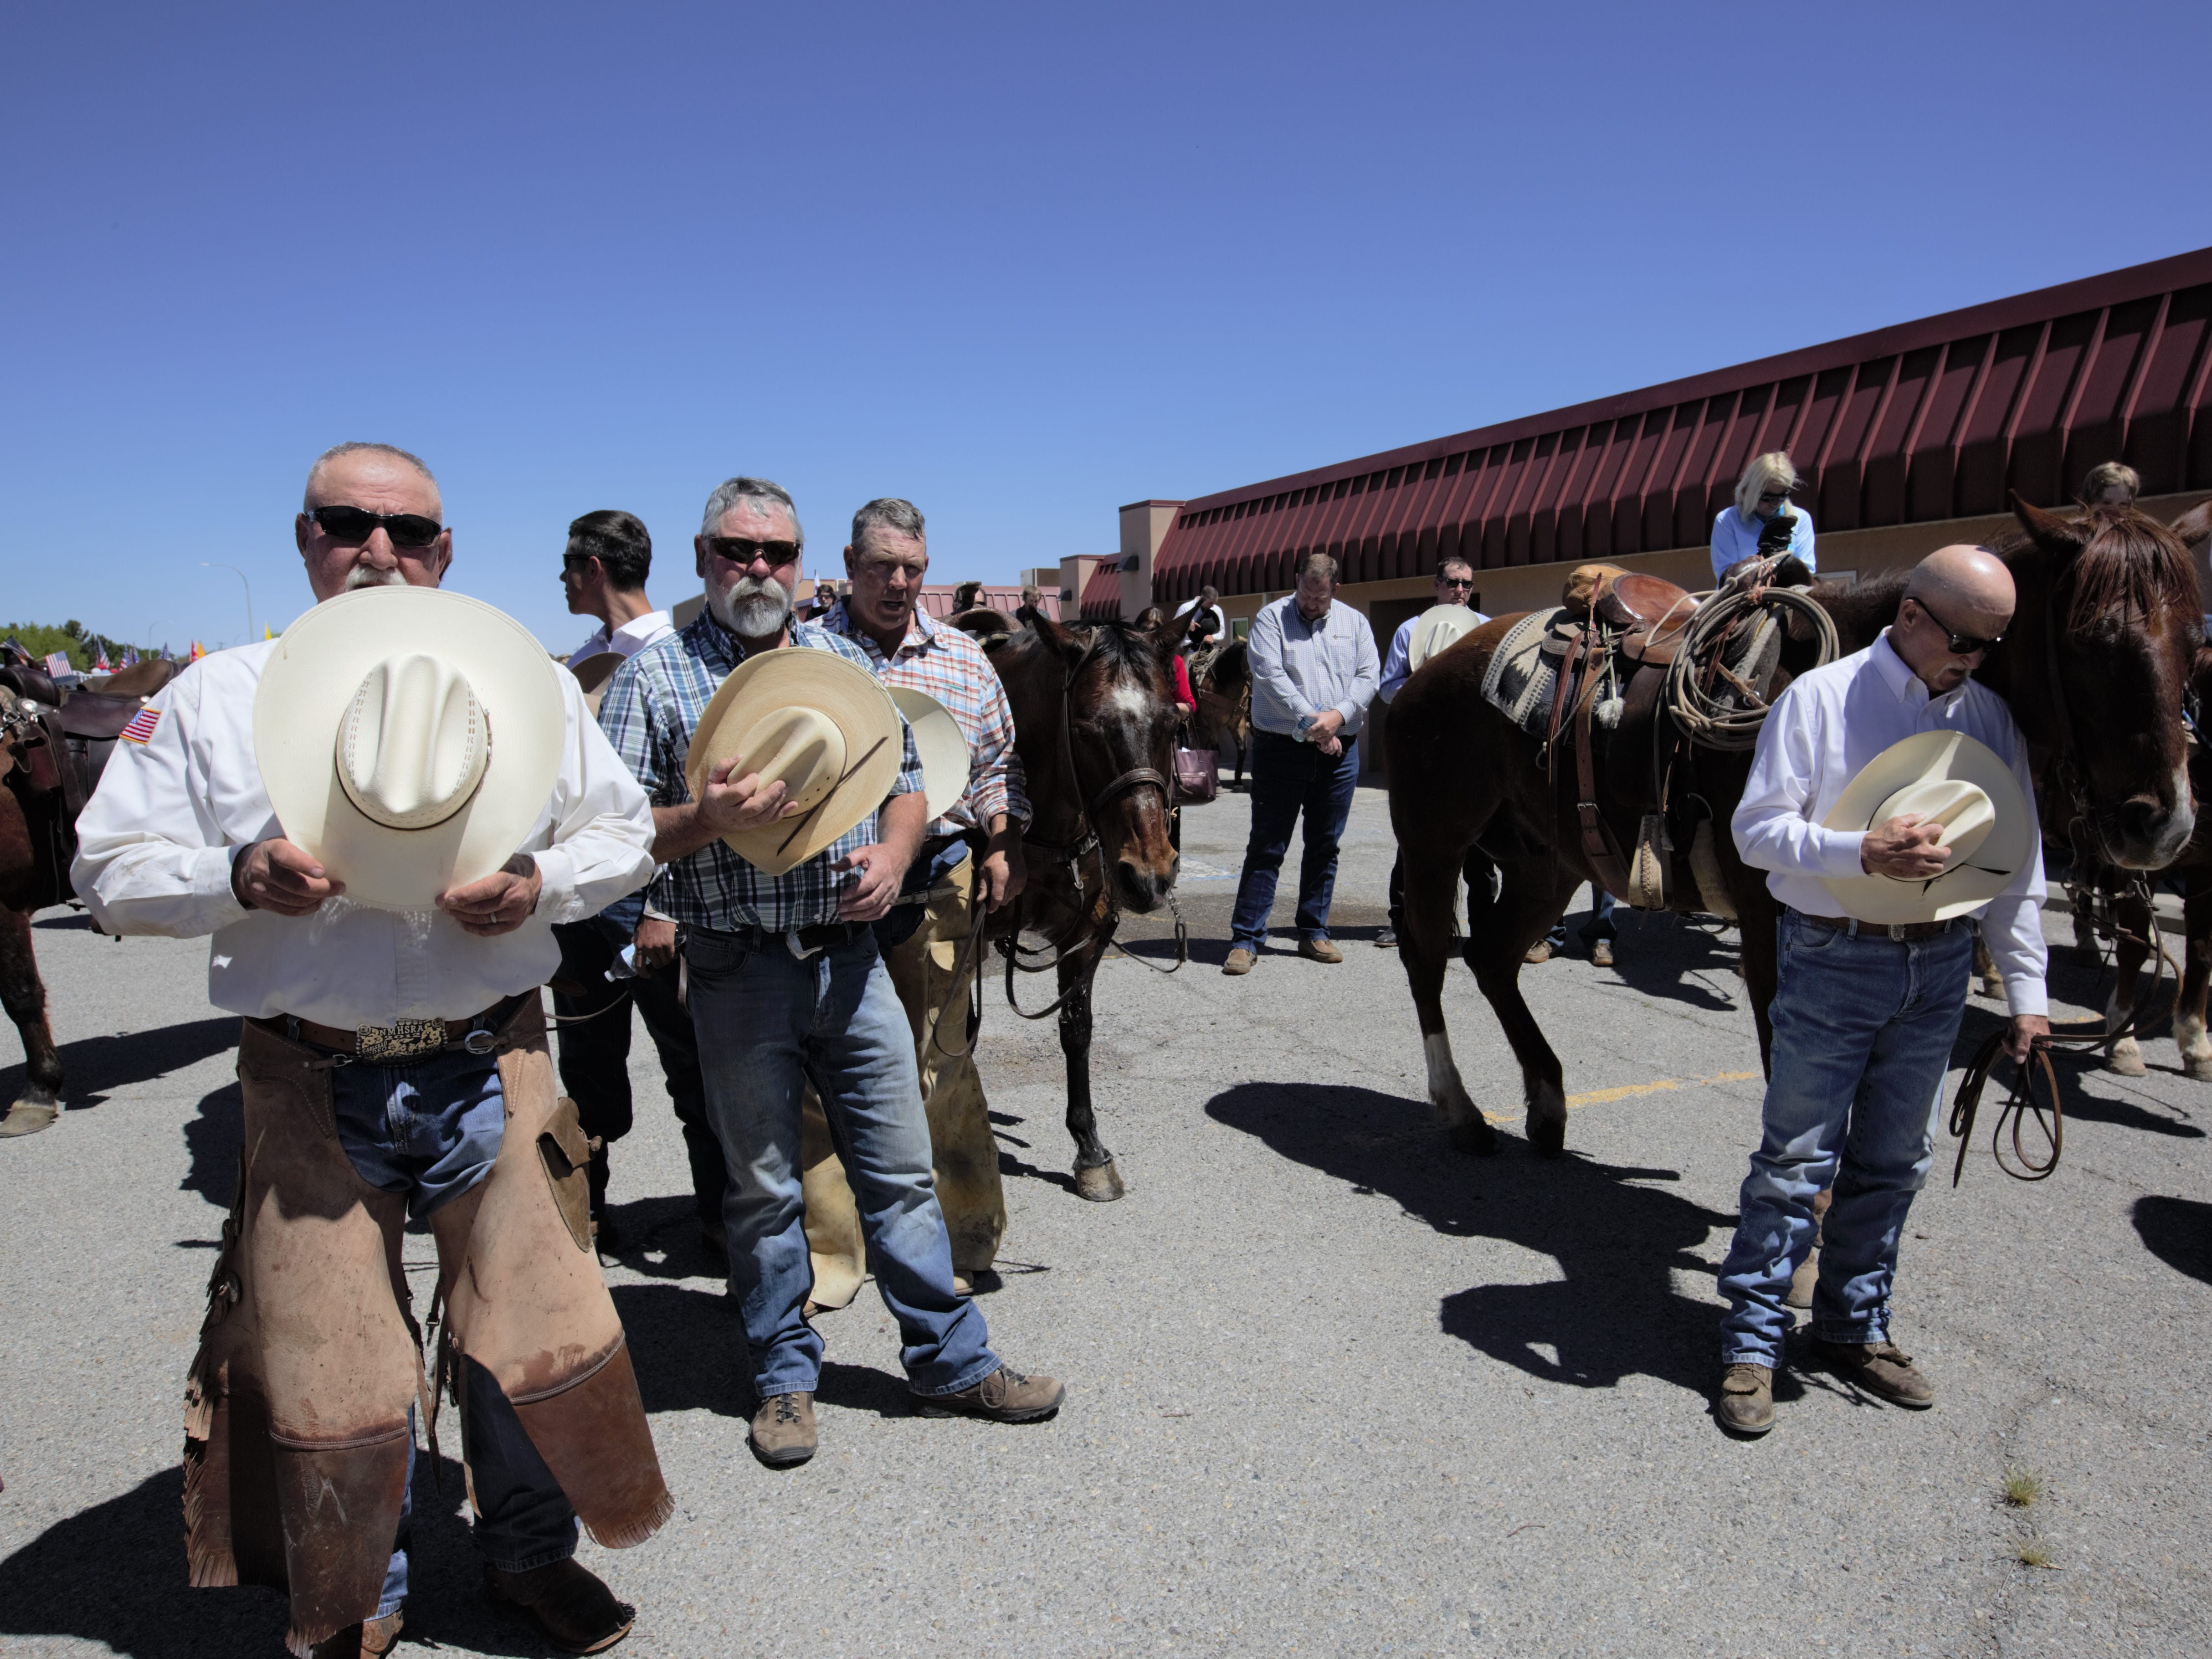 Participants in a Cowboys for Trump event in Las Cruces on Thursday, April 25, 2019 remove their hats for an invocation that launched the rally.